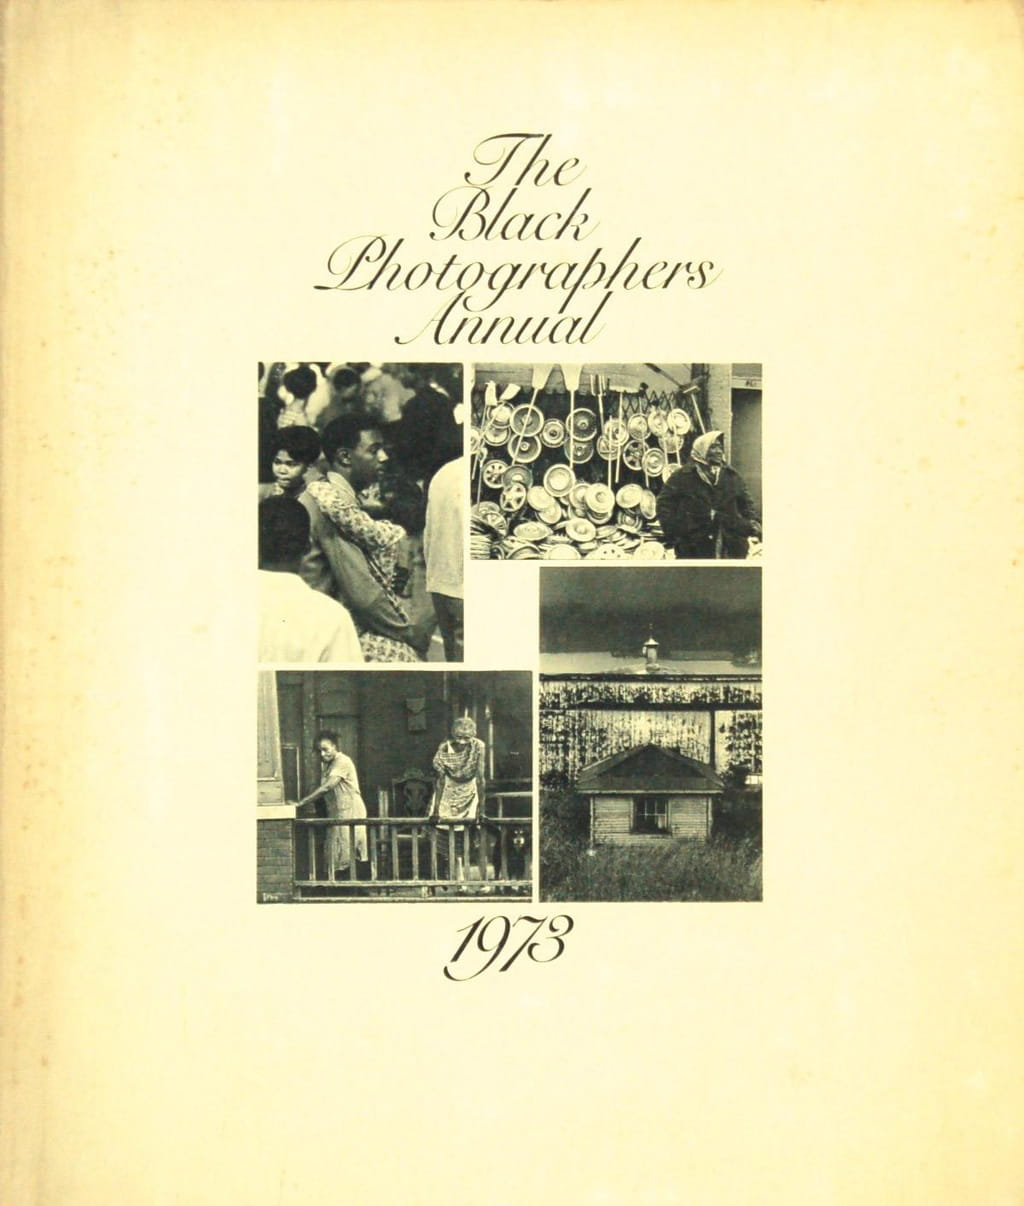 The Black Photographers Annual, published in 1973, was the first of four volumes, and included photographs by Beuford Smith, Lou Draper, Jimmie Mannas, Shawn Walker, and others, was a major influence on Bey's work and practice.